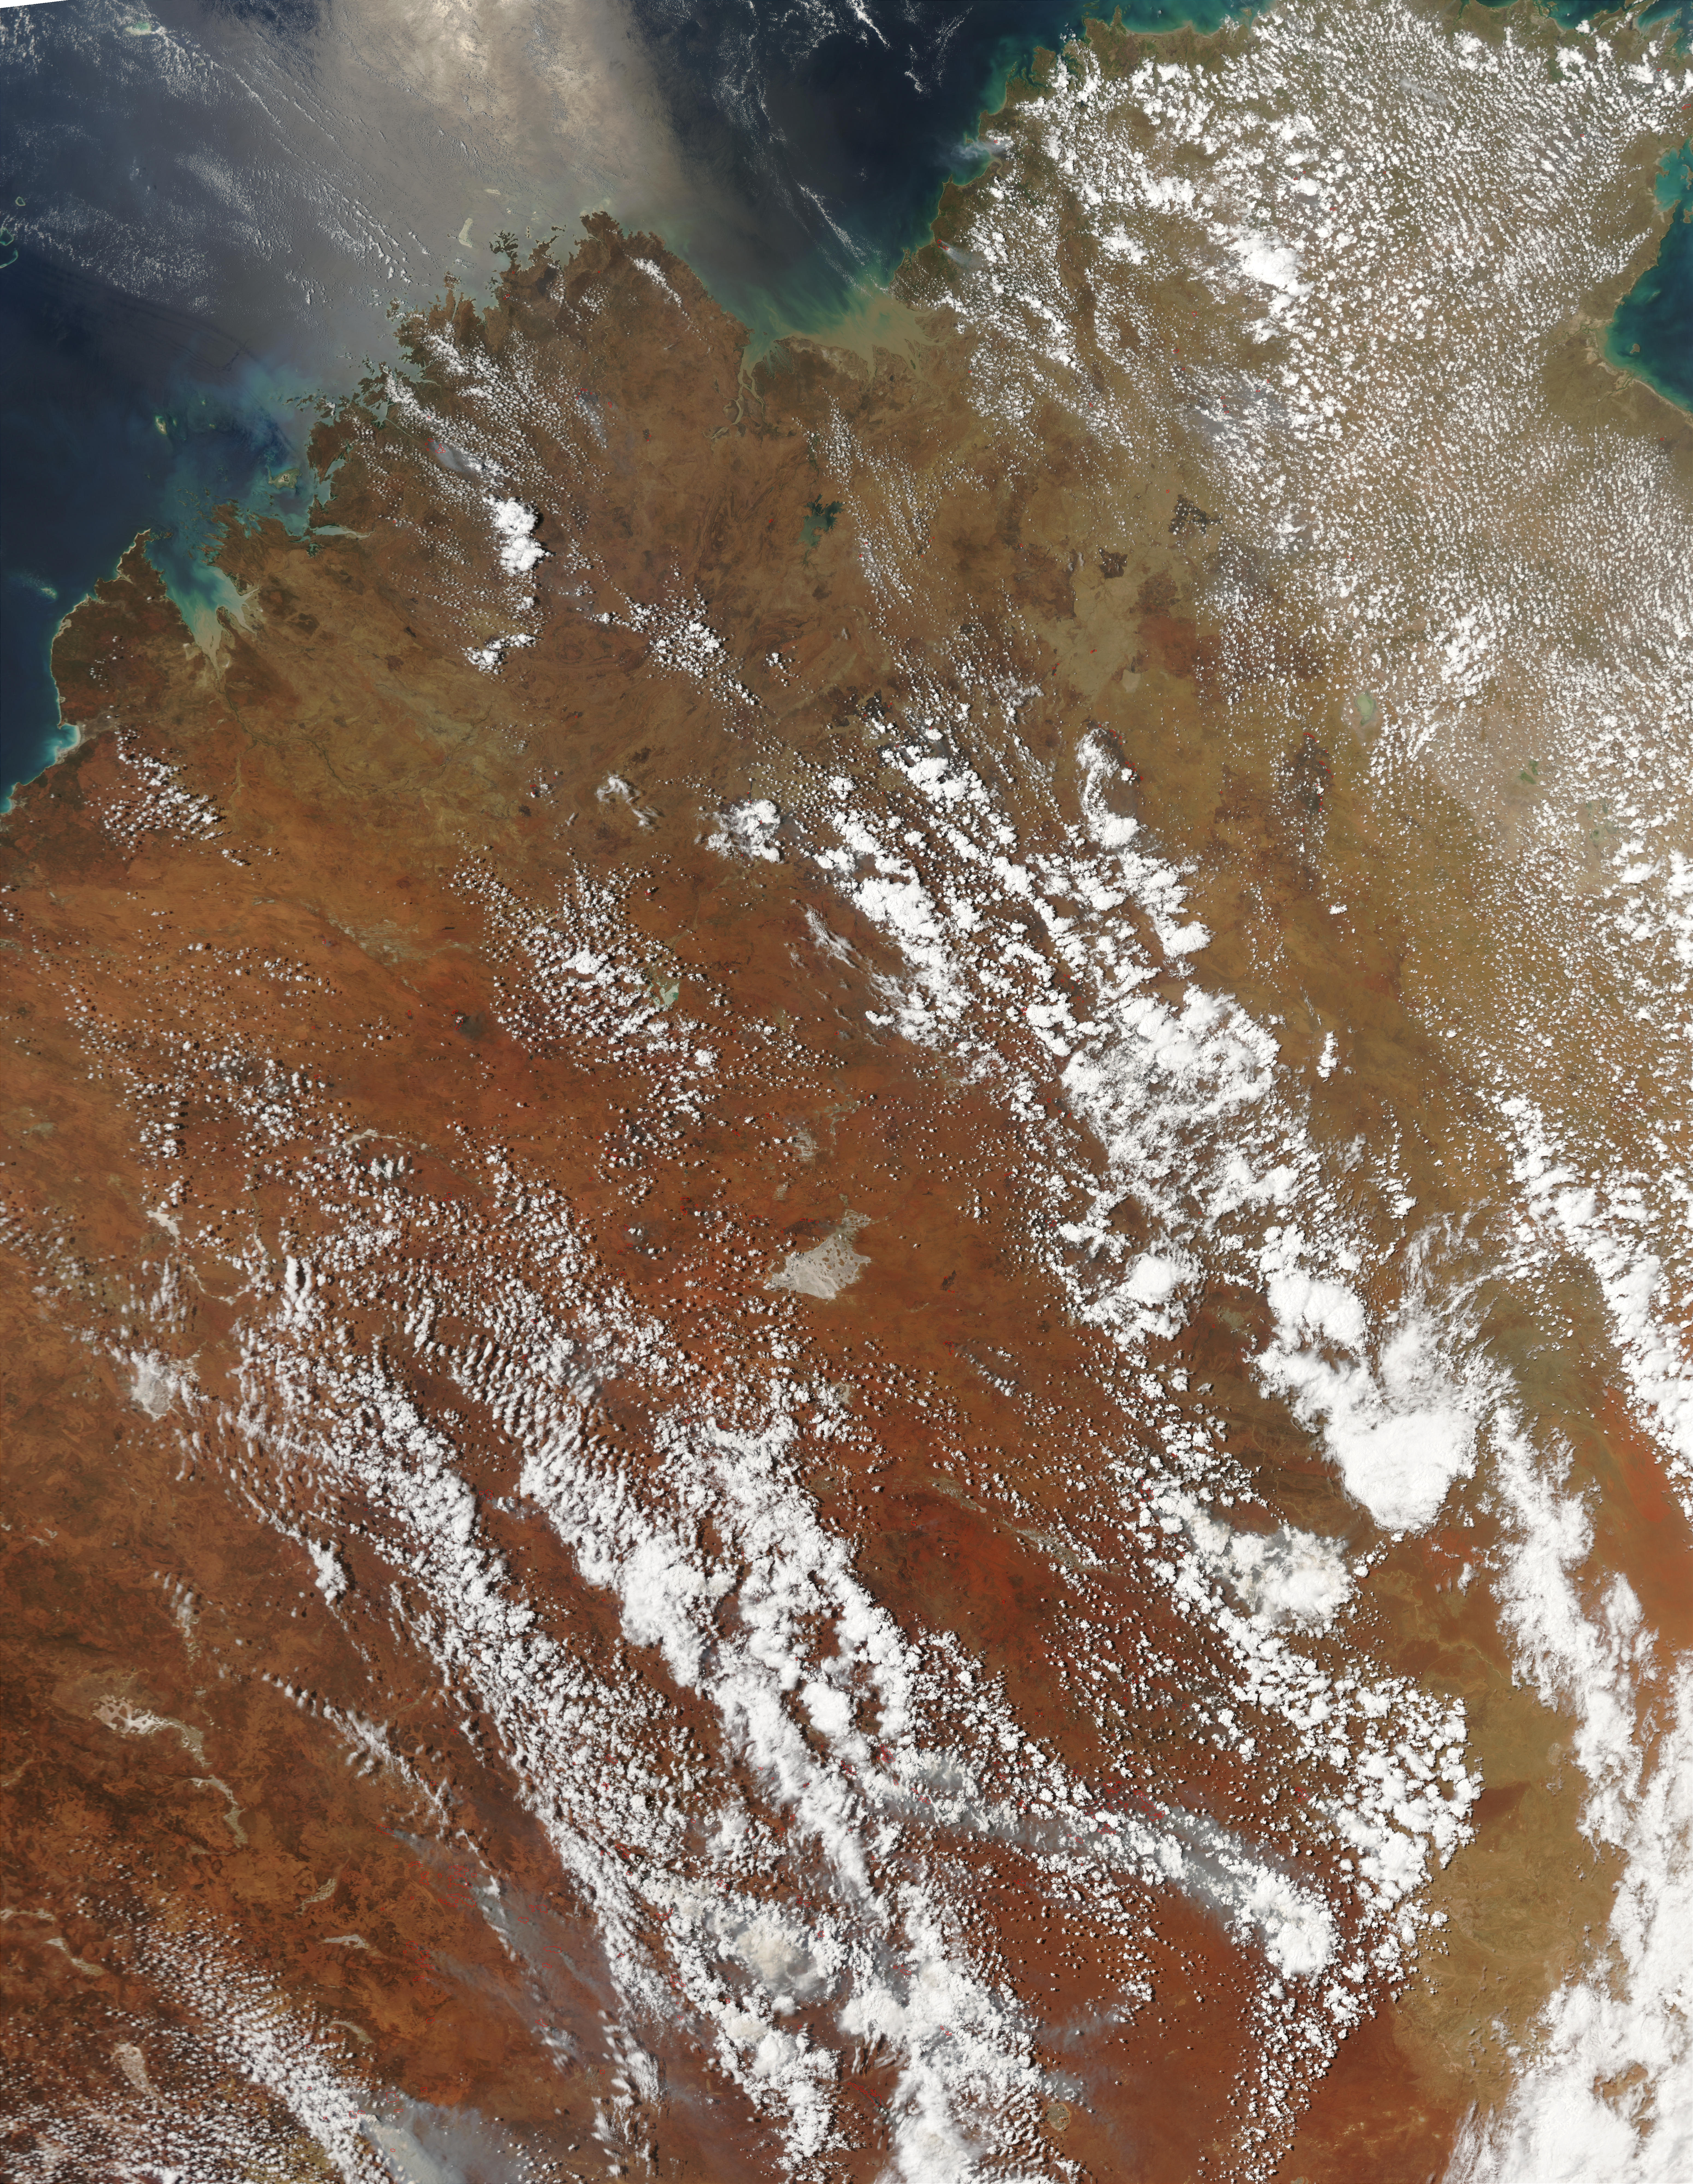 Fires in Northern and Central Australia